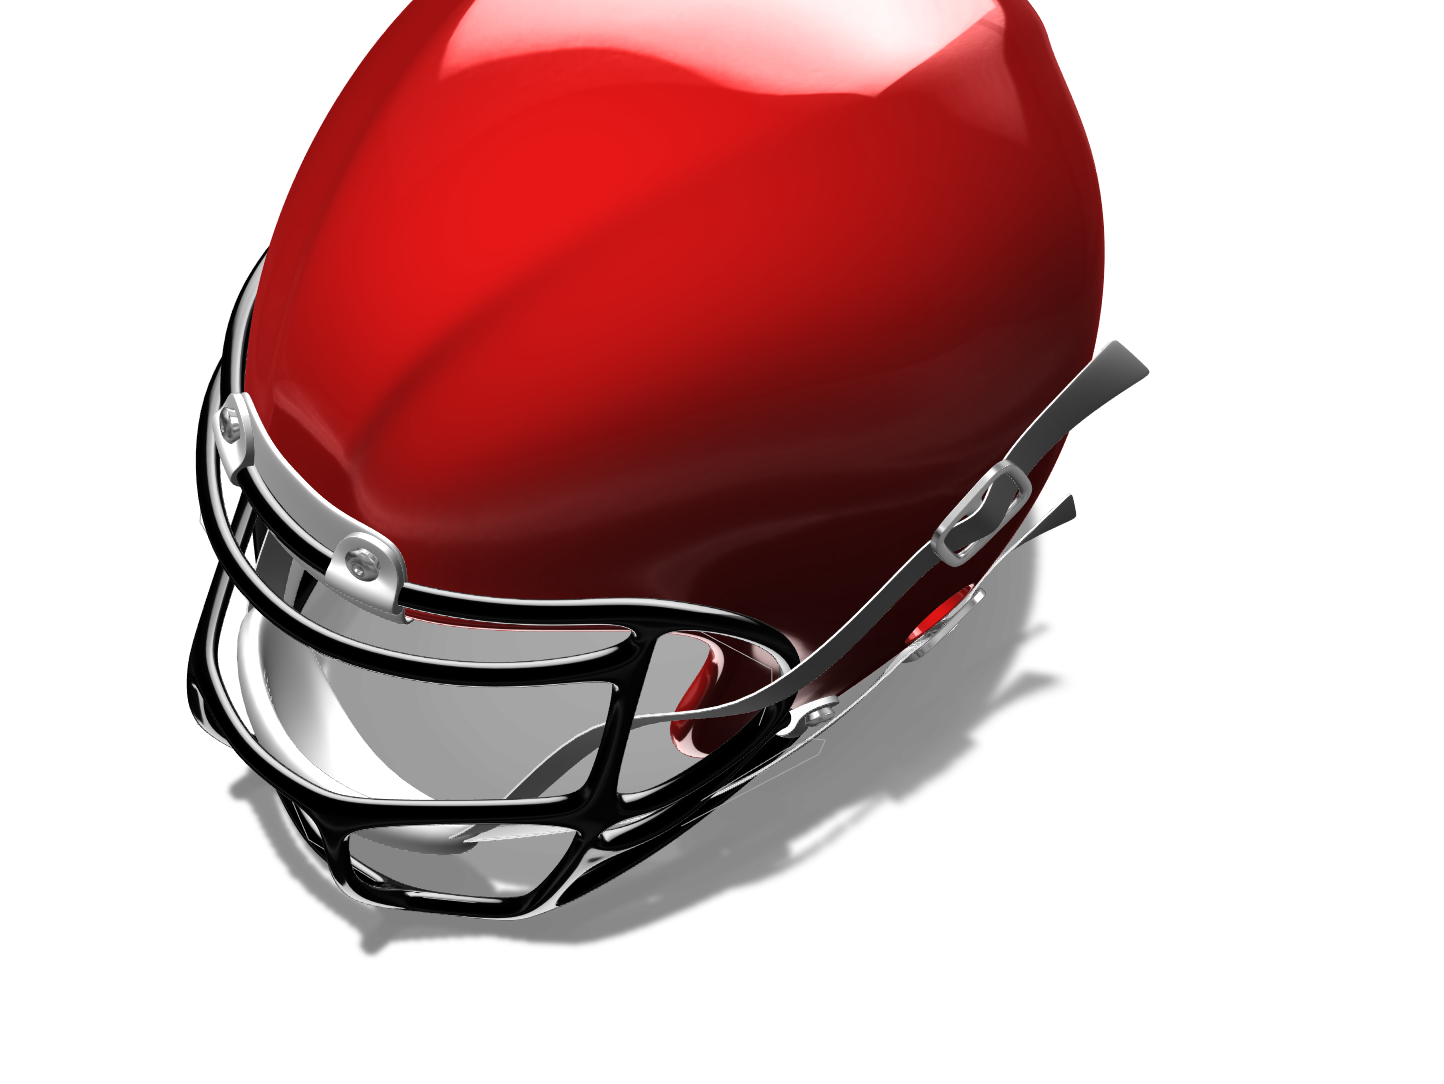 NFL Helmet - 3D design by tayzar.mstf Mar 11, 2018